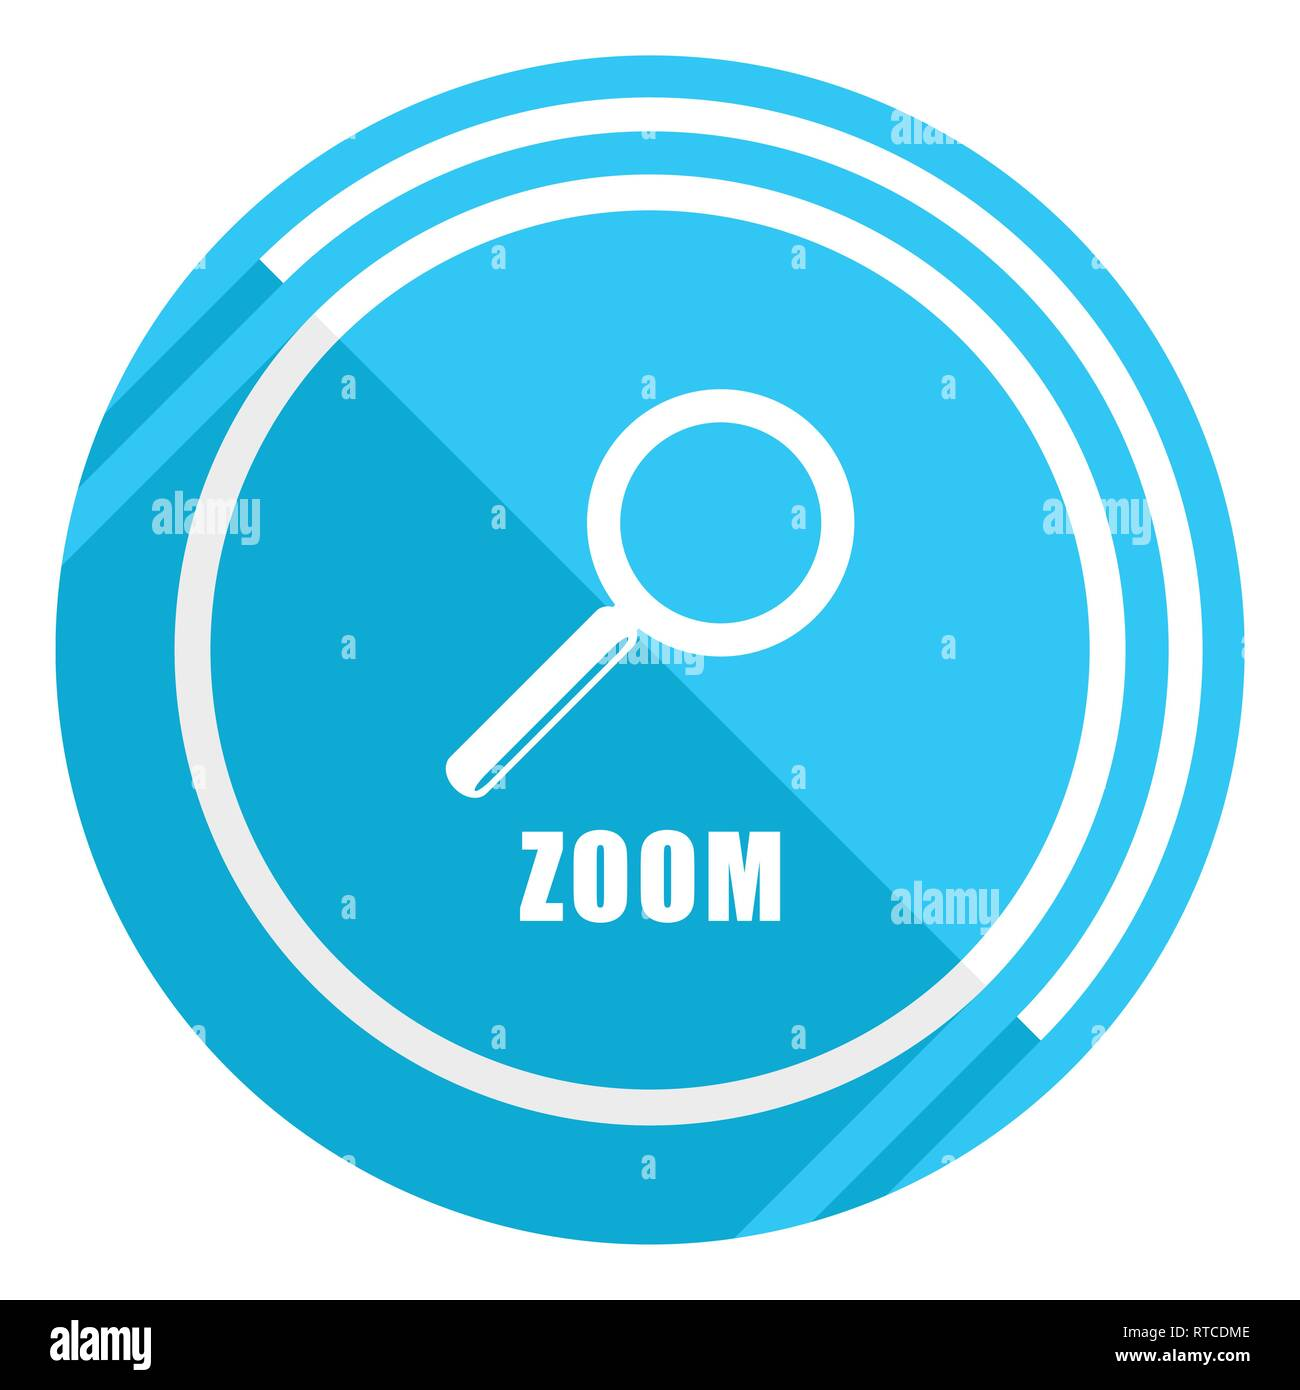 Zoom flat design blue web icon, easy to edit vector illustration for webdesign and mobile applications - Stock Image